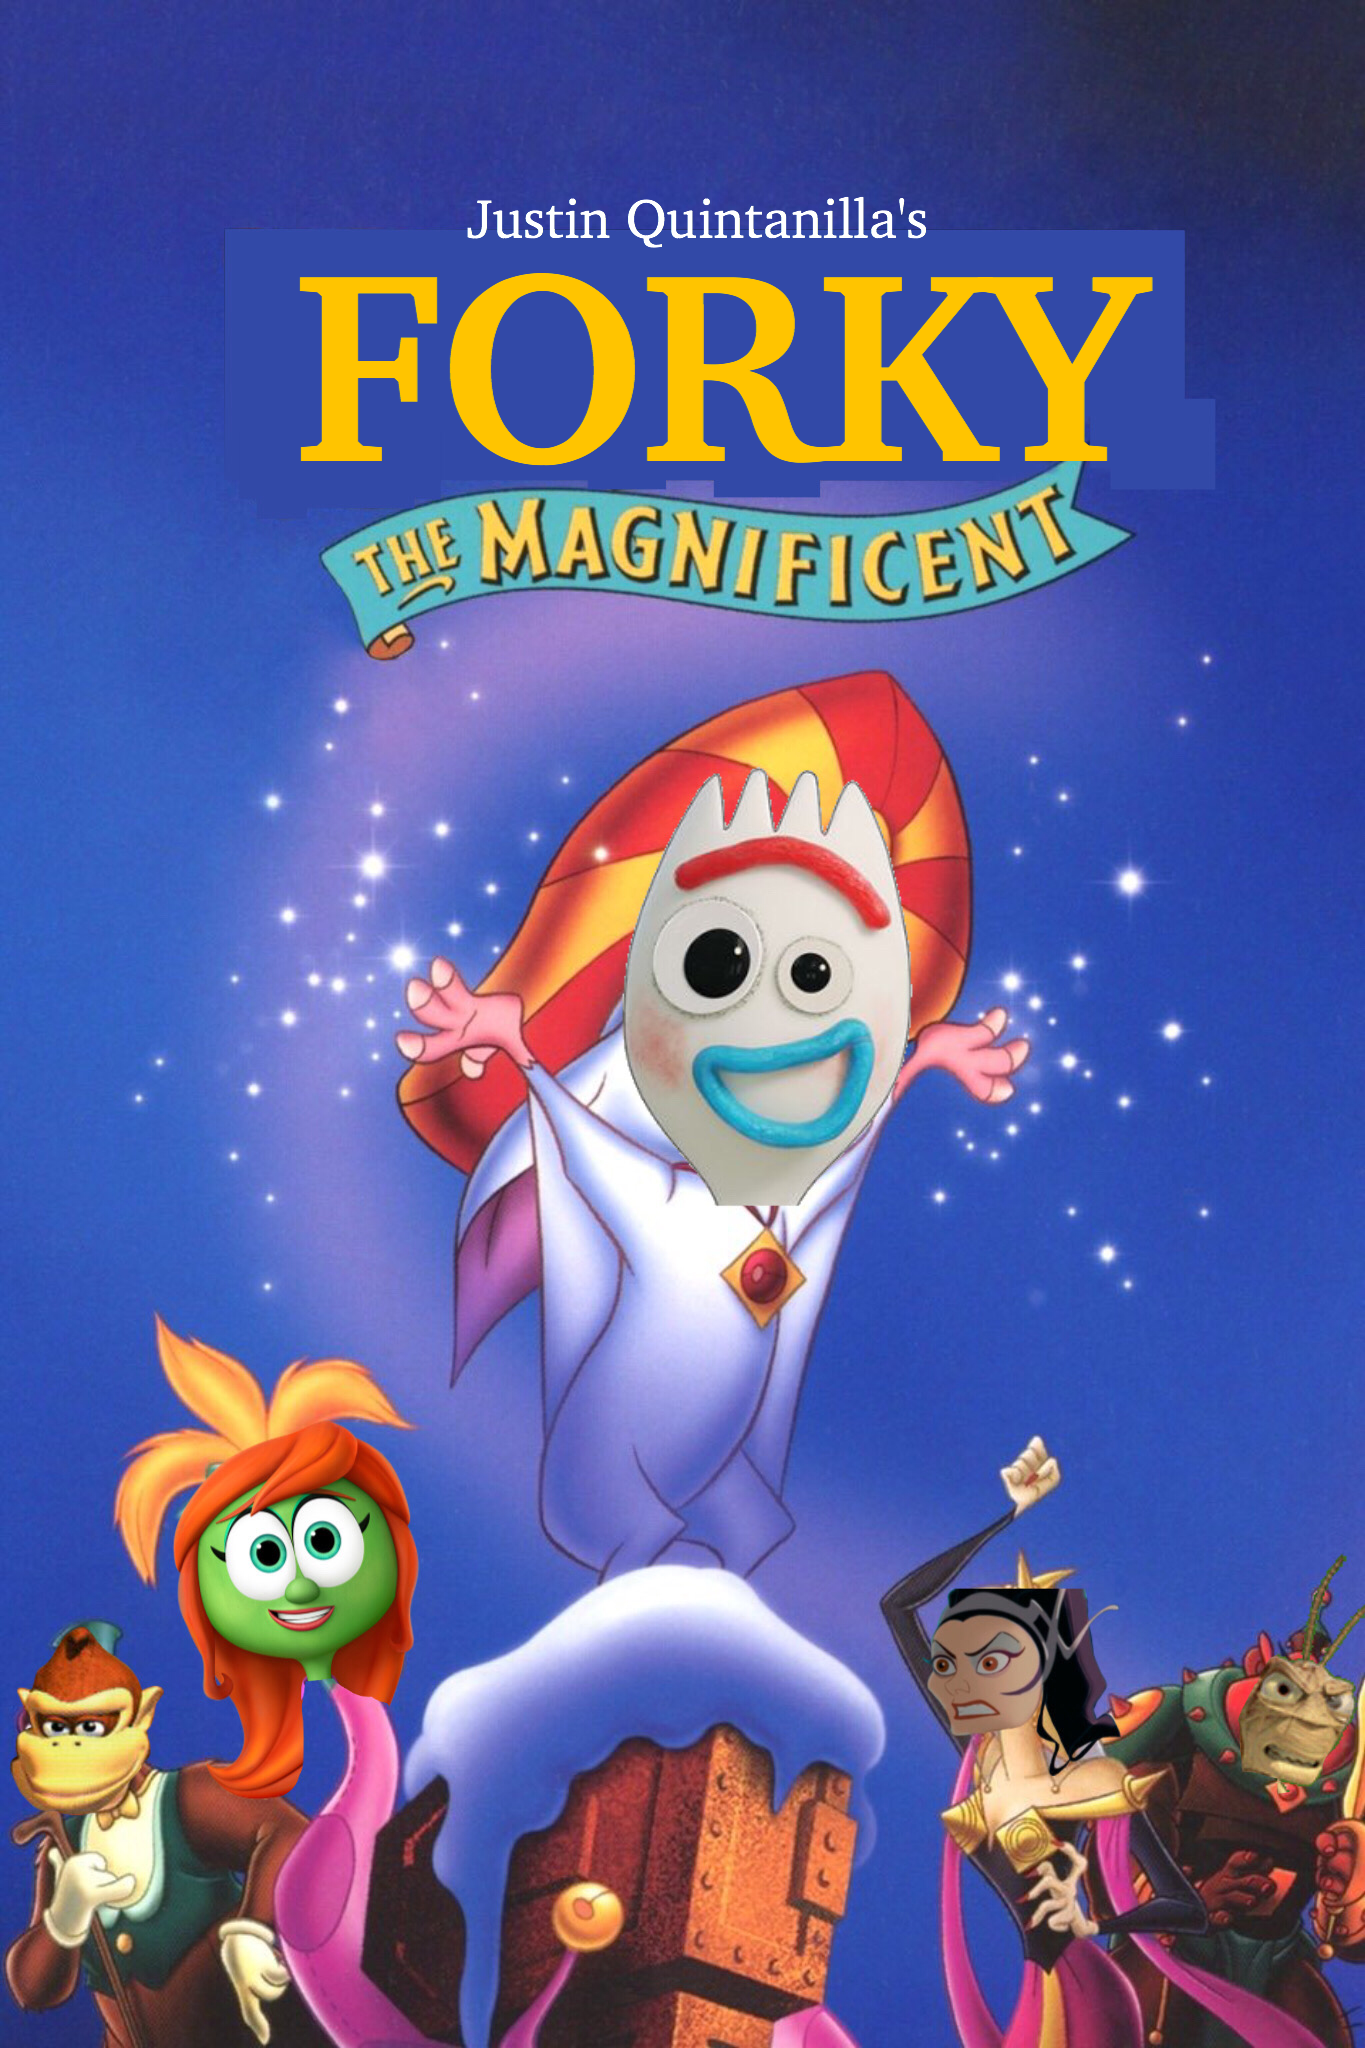 Forky the Magnificent